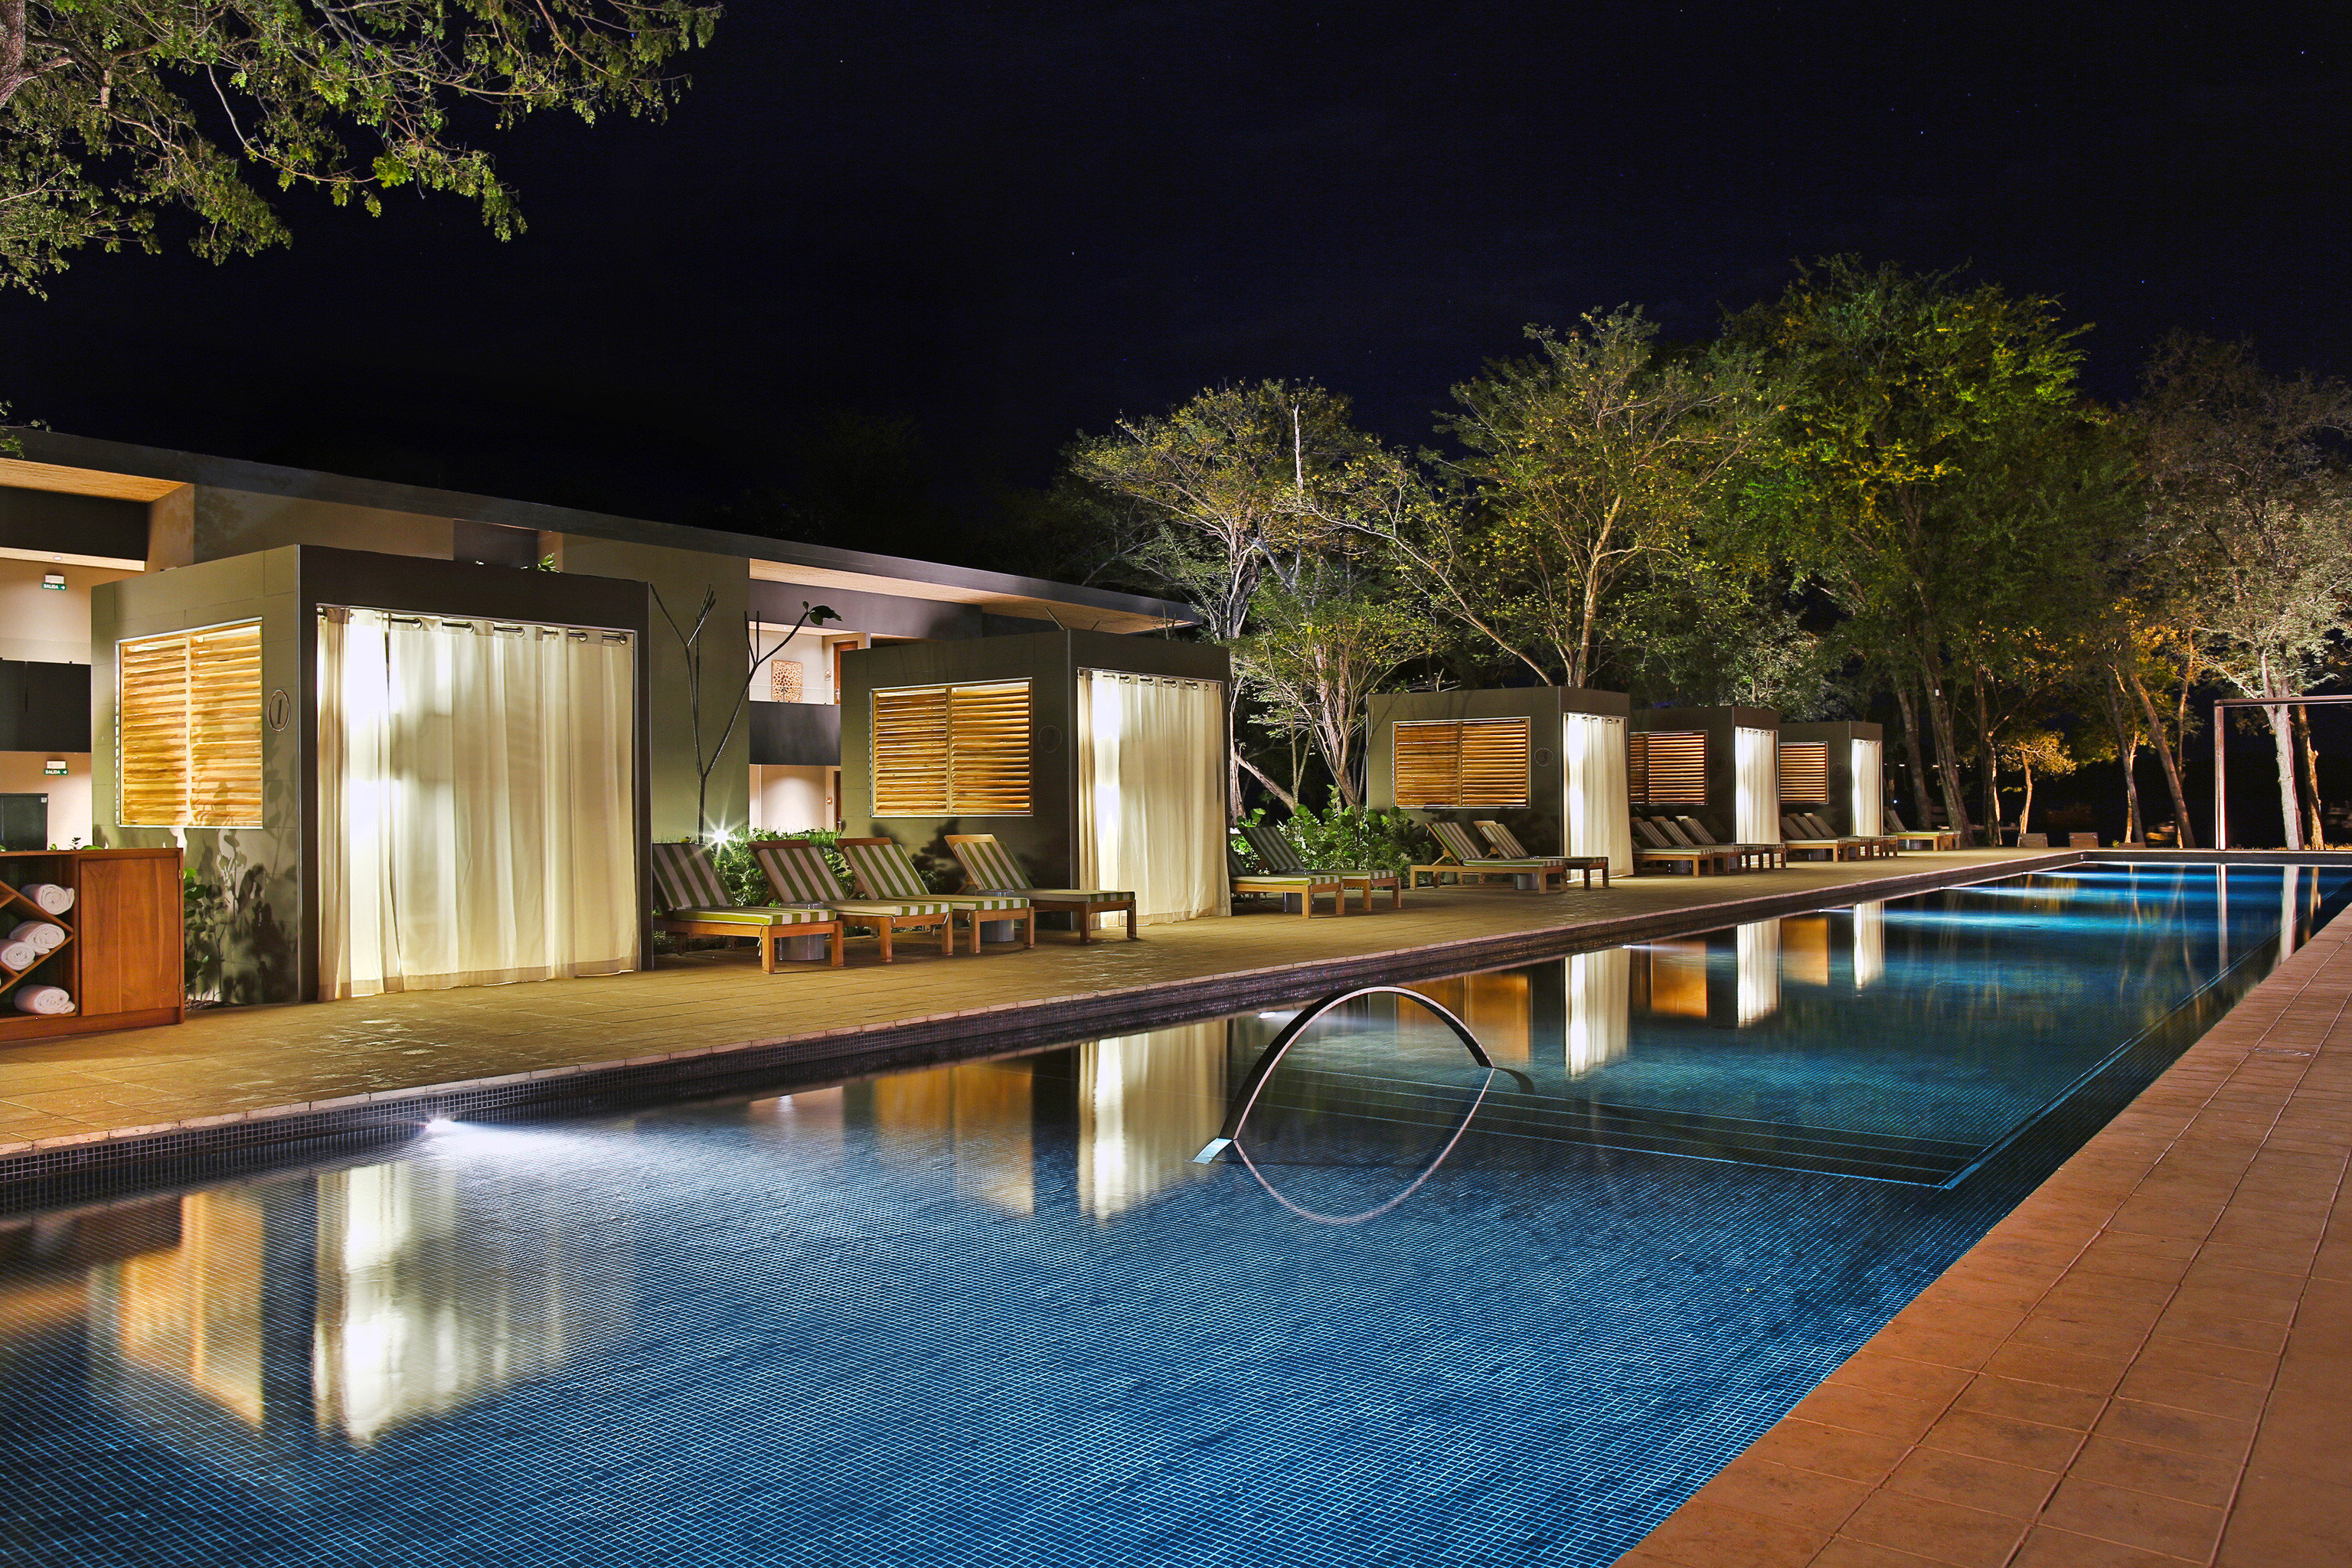 Beachfront Boutique Elegant Hip Hotels Patio Pool Waterfront tree outdoor swimming pool property estate house home Architecture reflecting pool backyard mansion reflection lighting landscape lighting condominium Villa real estate Courtyard Resort